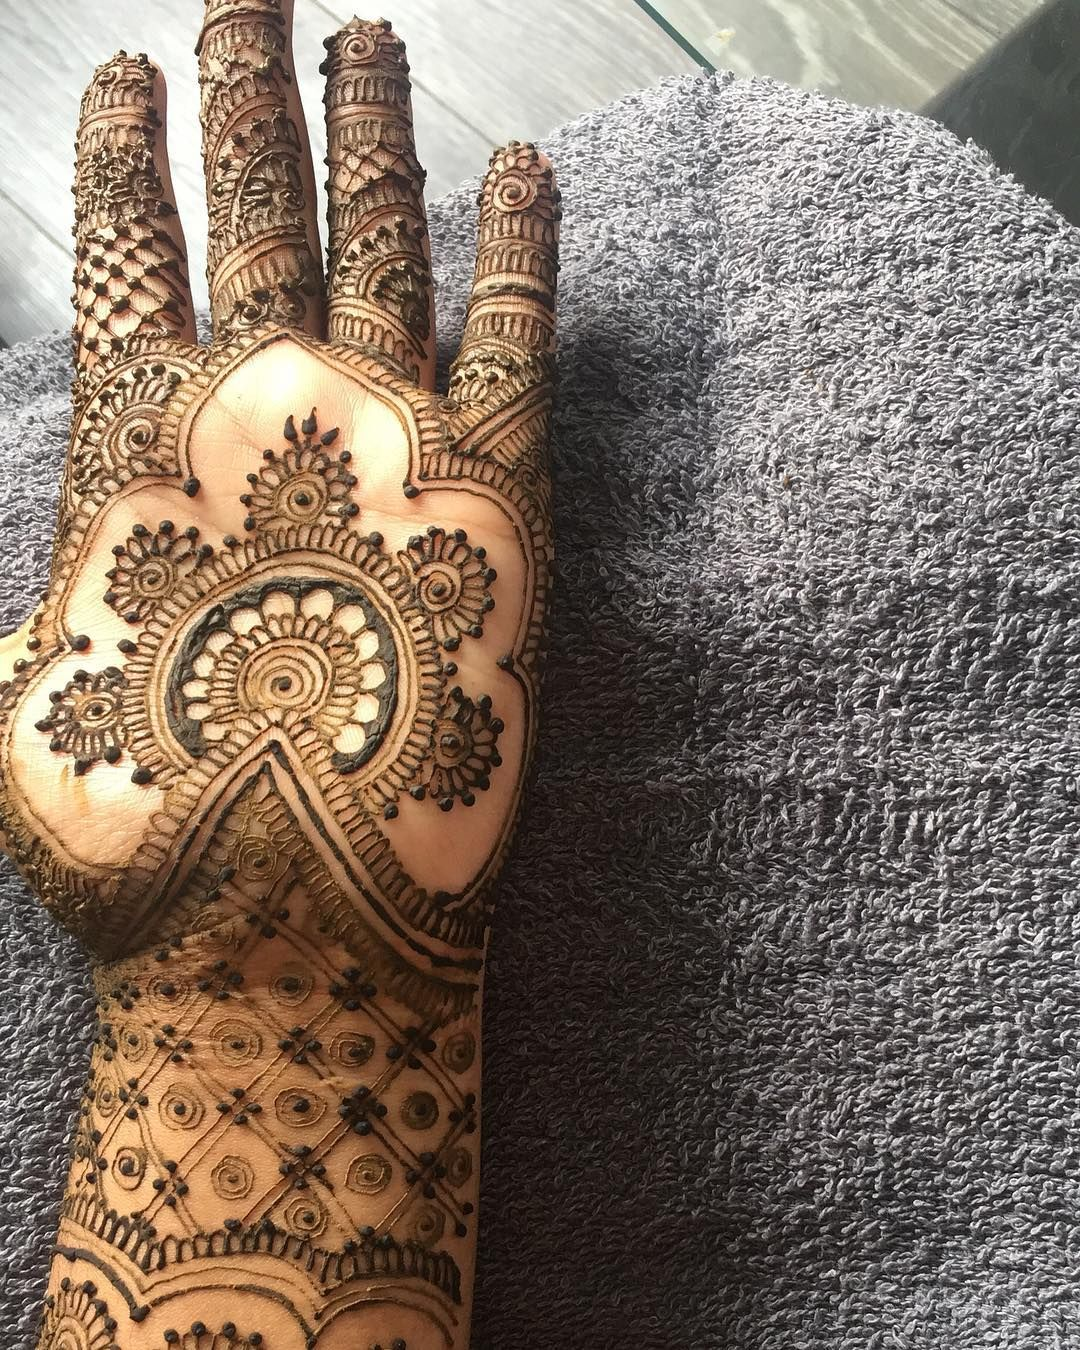 Now taking bookings for 2018/2019  For bookings and enquiries email at  akenquiries@yahoo.com or  Whatsapp on 07464615152  Also when enquiring mention the  date and  location of where the henna is getting done  I prefer brides to get their henna done at least 2 days before their wedding/function.  #mehndi #hennatattoo #hennalookbookin #henna #design #hennainspire #hennaartist #mehandi #pakistan #mendi #paisley #flower #art #lookamillion #mummillion #dollhousedubai #hudabeauty #monakattan #pakistaniwedding #pakistanibrides #indian #bridalhenna #partyhenna @hennainspire @hennalookbookin @hudabeauty @monakattan @alyakattan @dollhousedubai #lookamillion #mummillion #mehndis #mehndibride #mehndiparty #mehndinight #inspiration #bradford #uk